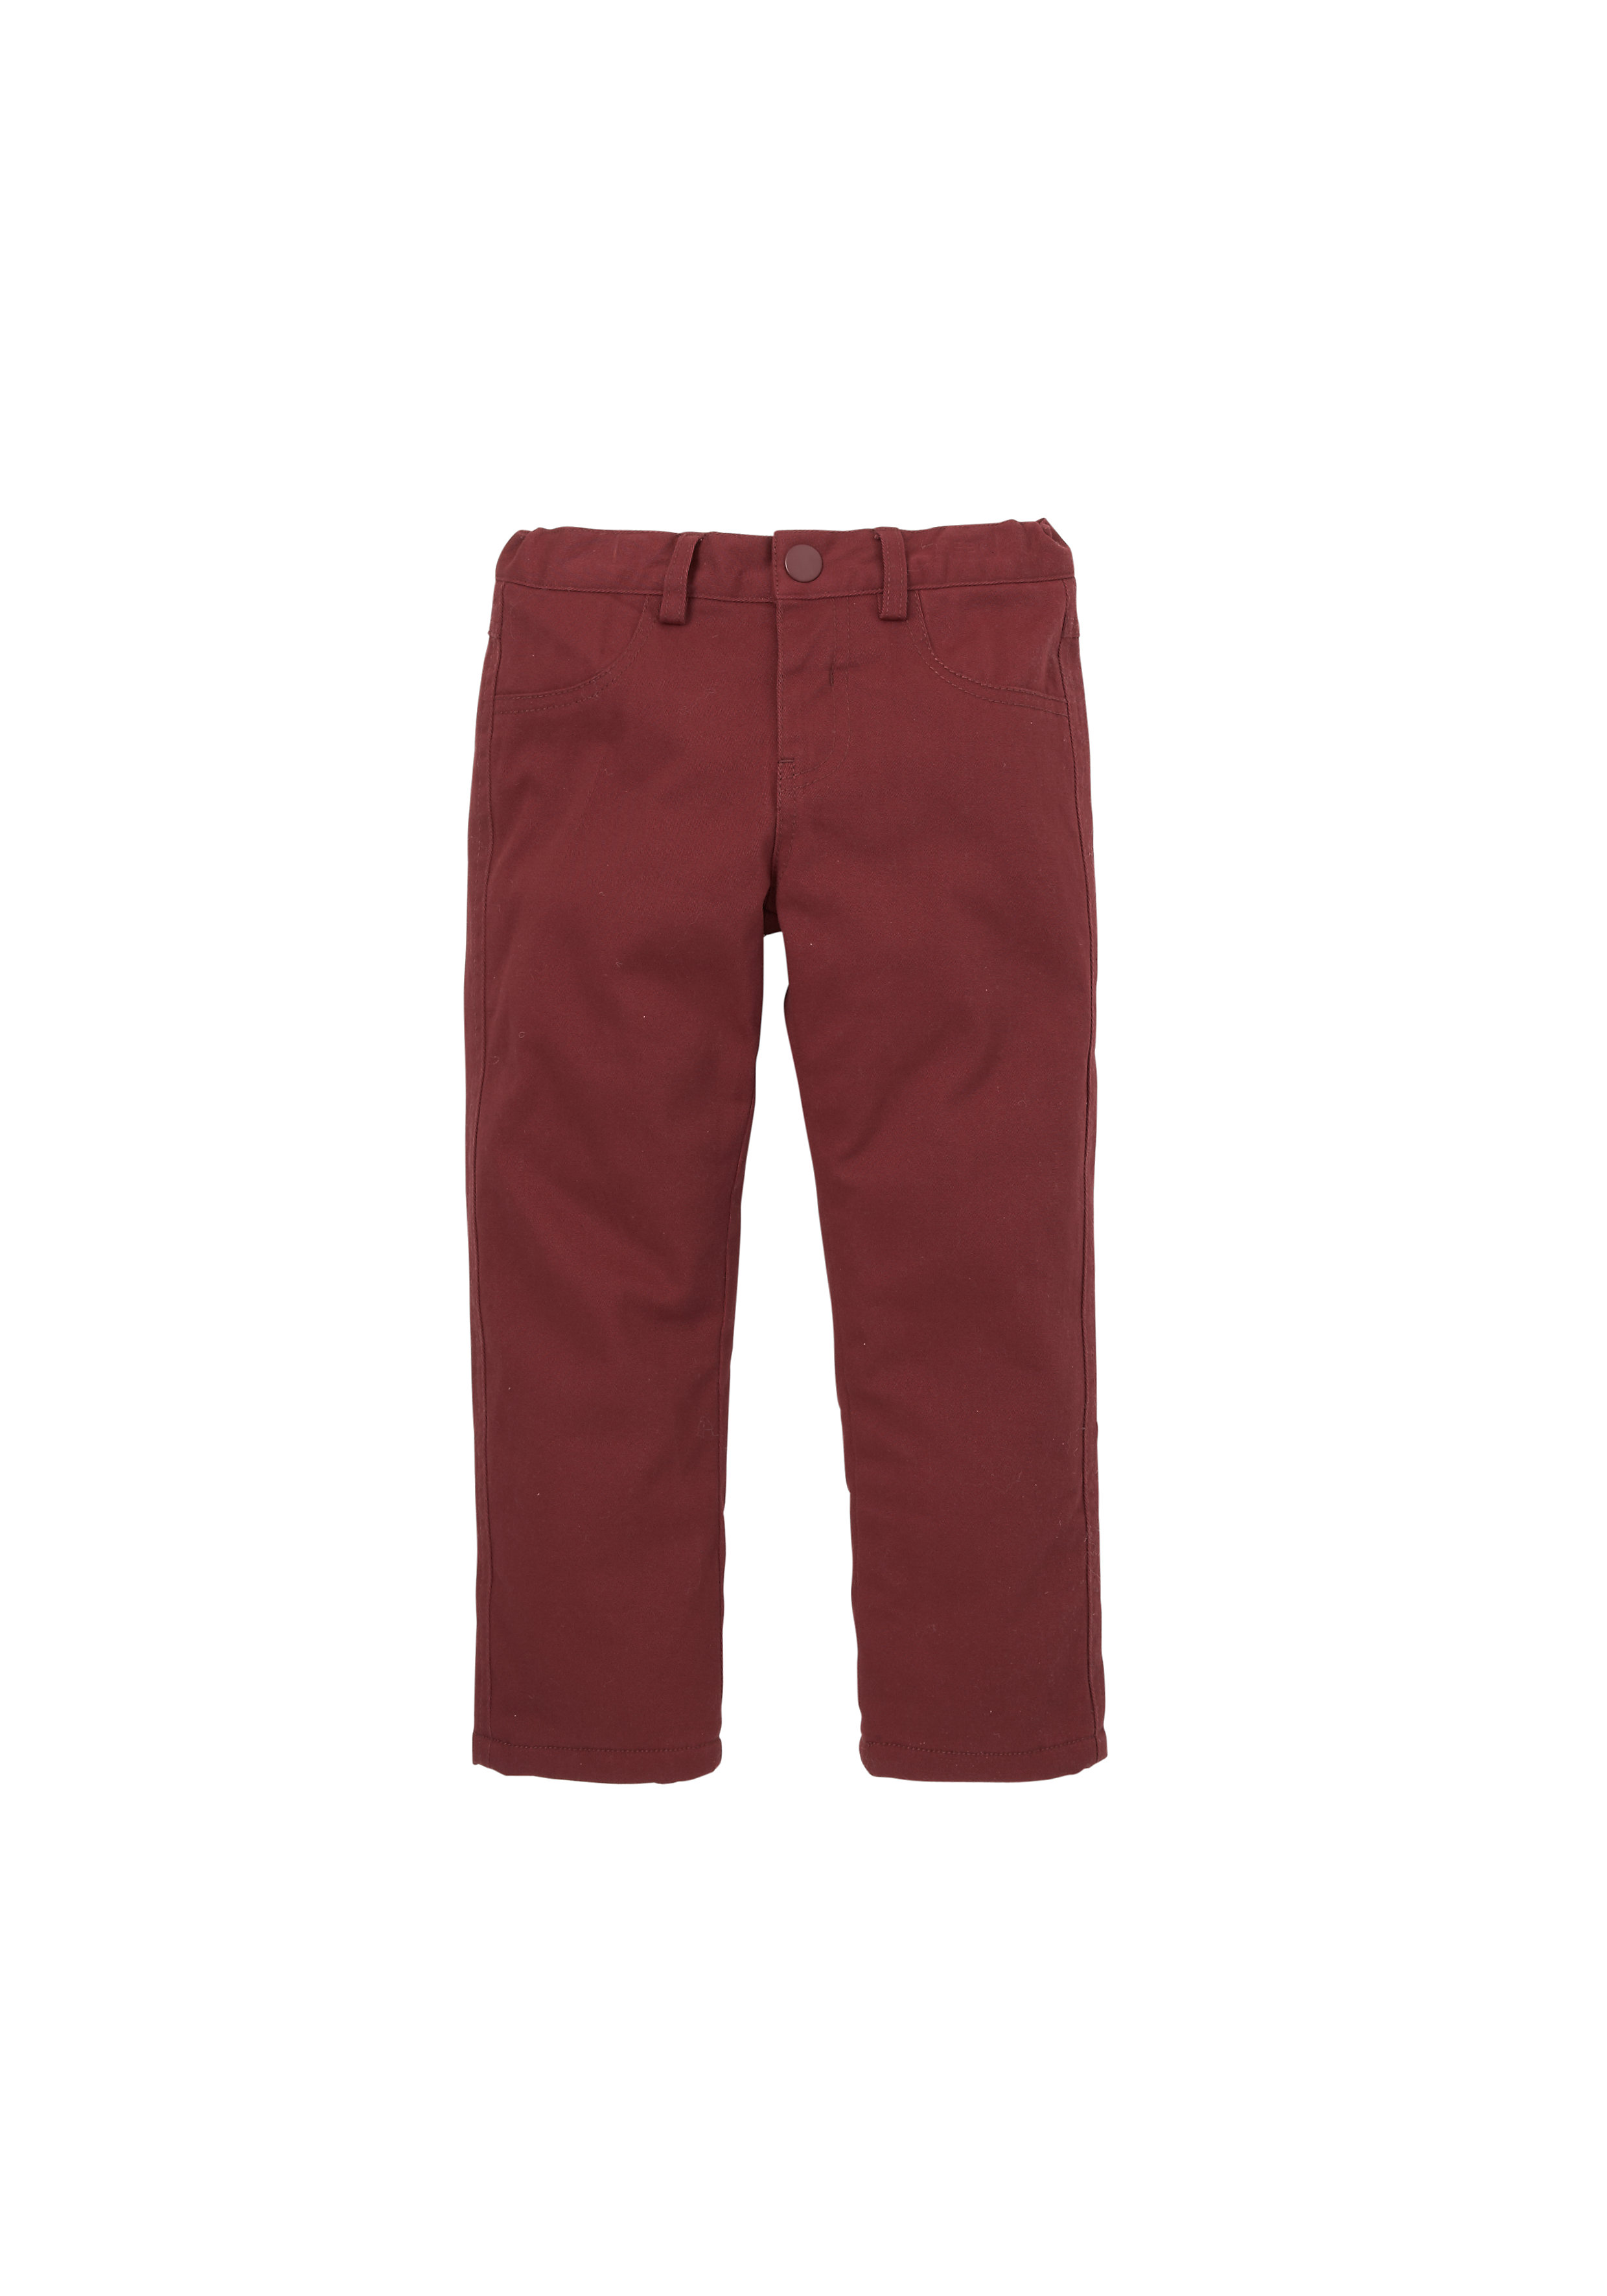 Mothercare | Girls Trousers - Burgundy